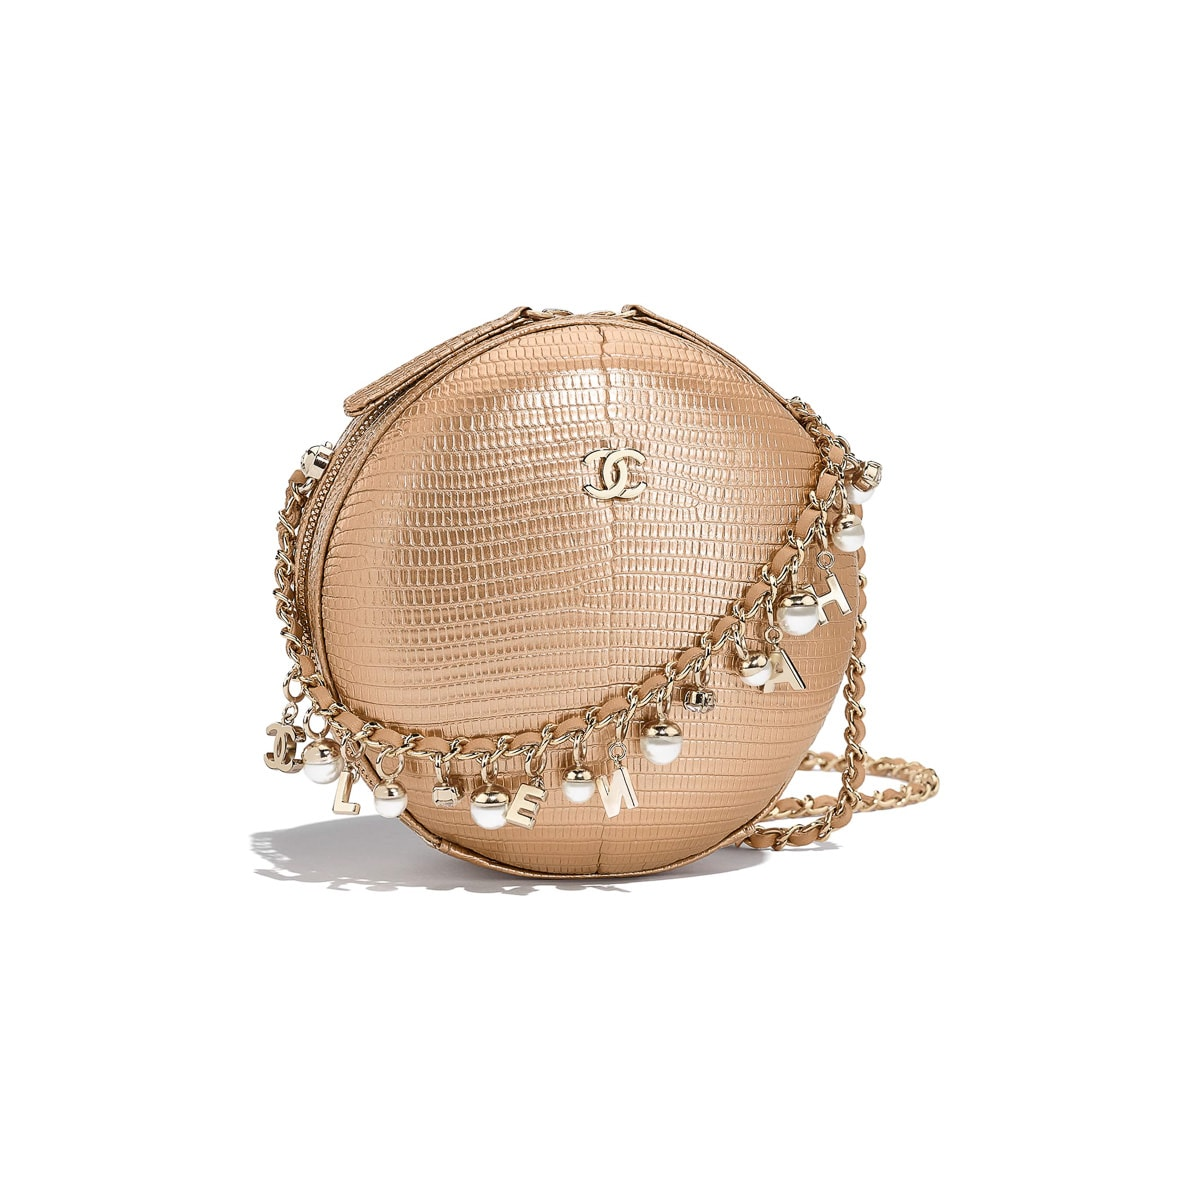 We've Got Over 100 Pics + Prices of Chanel's Nautical ...